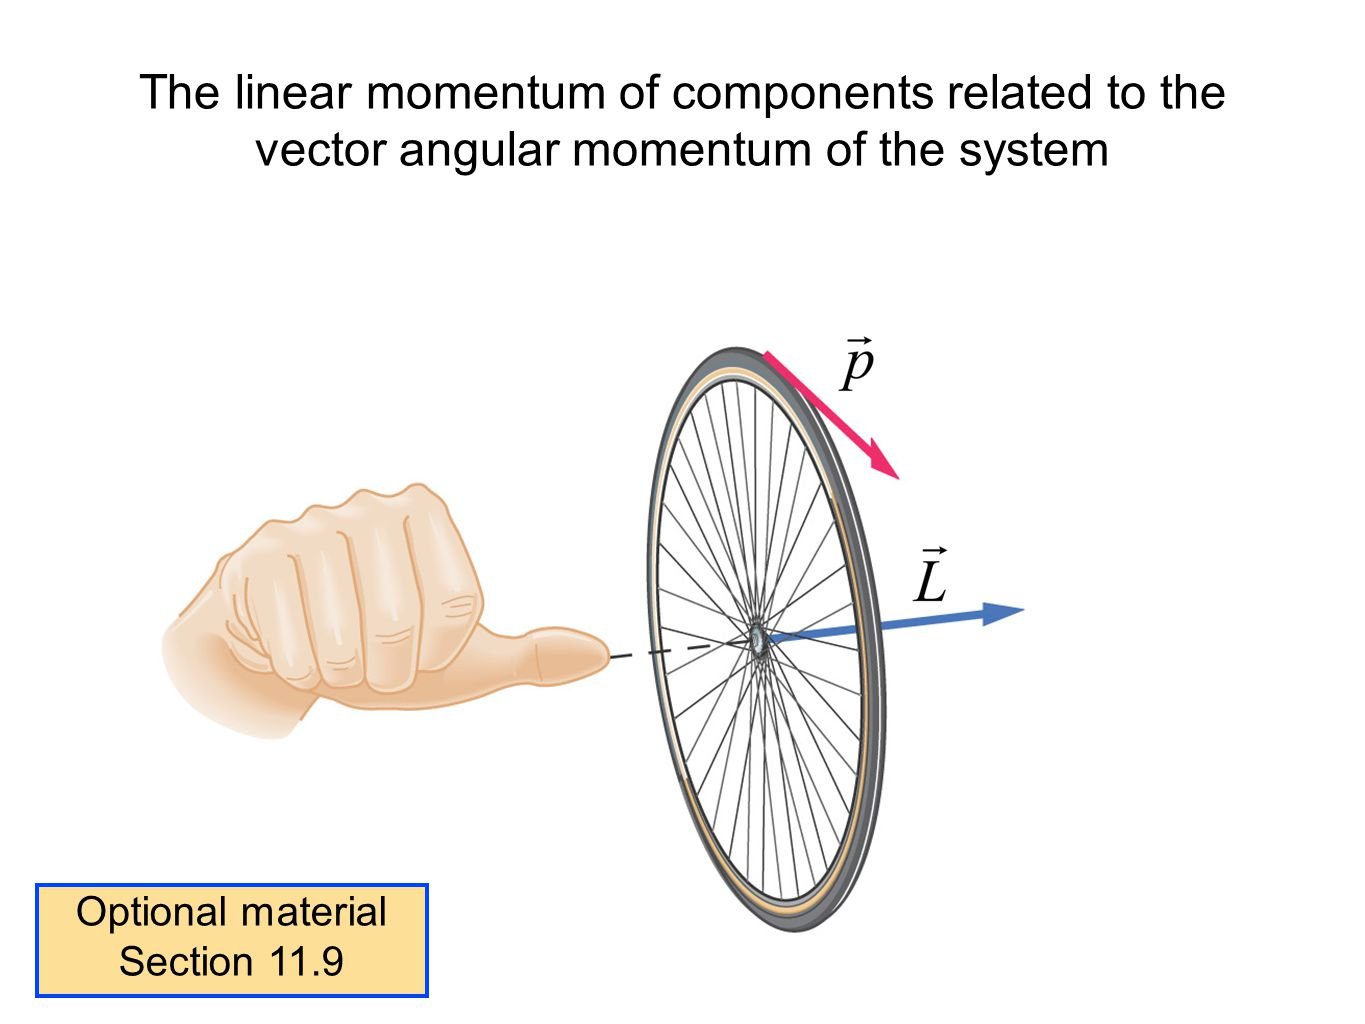 The linear momentum of components related to the vector angular momentum of the system